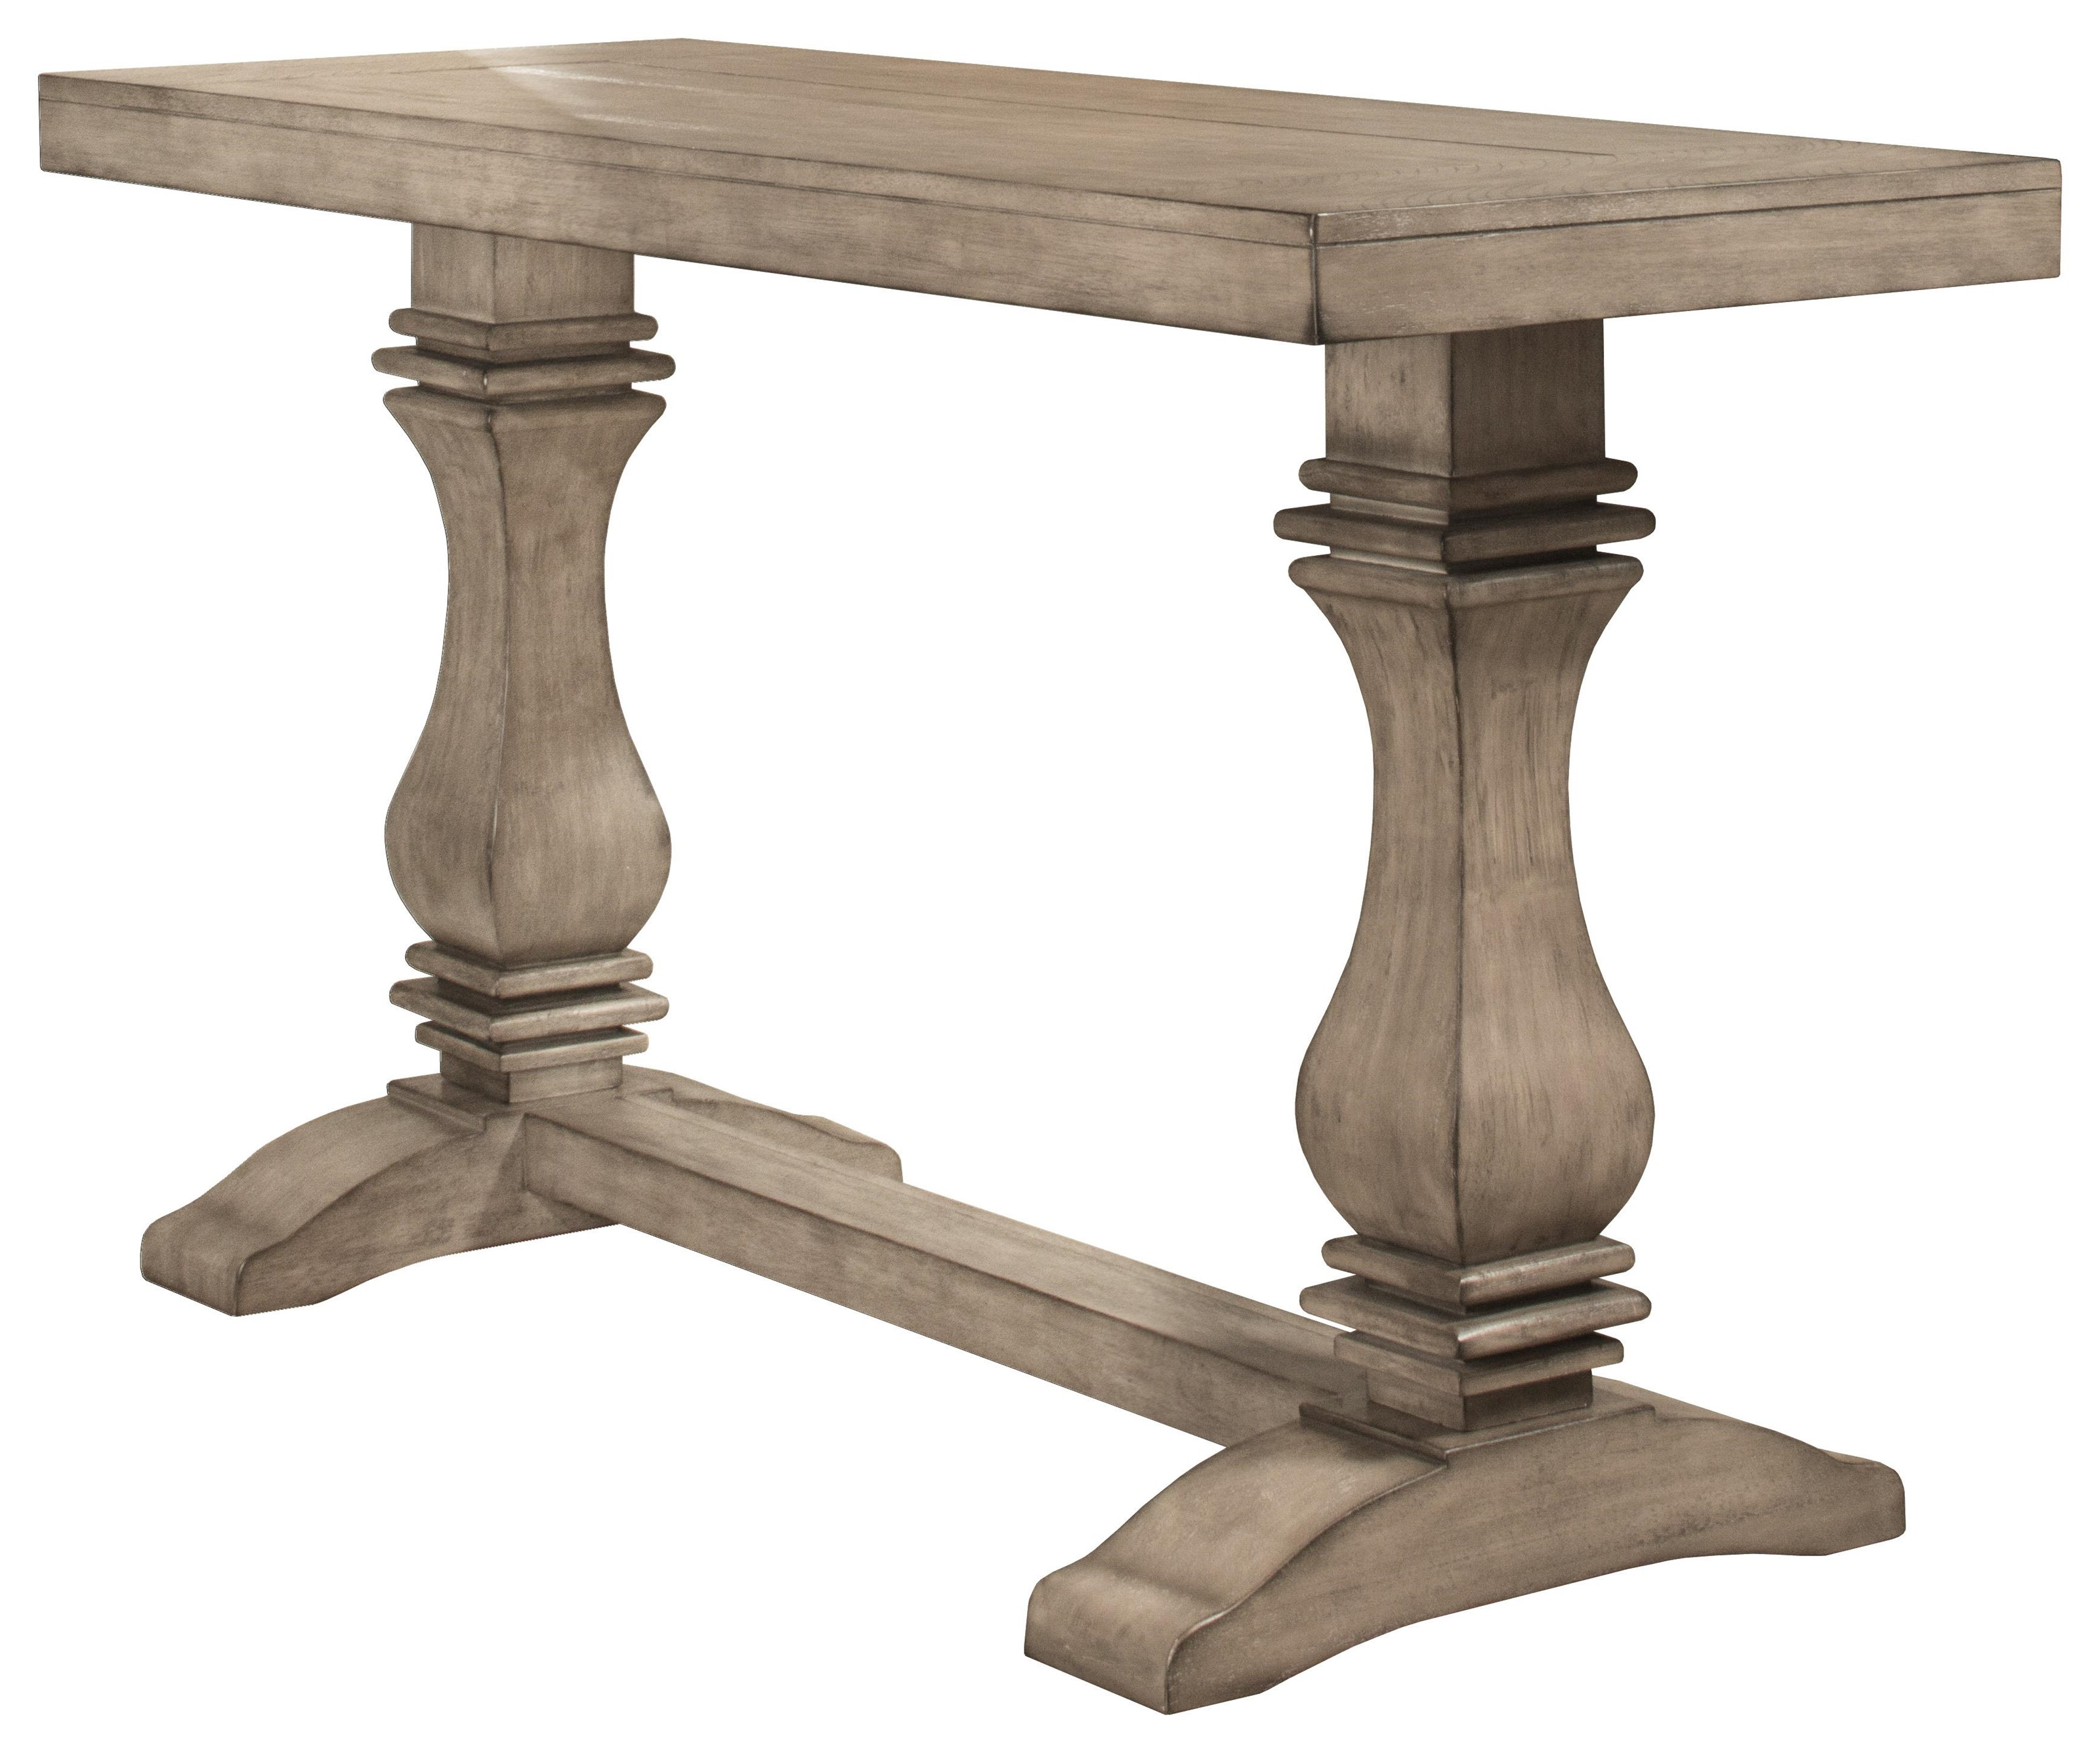 Concole Table